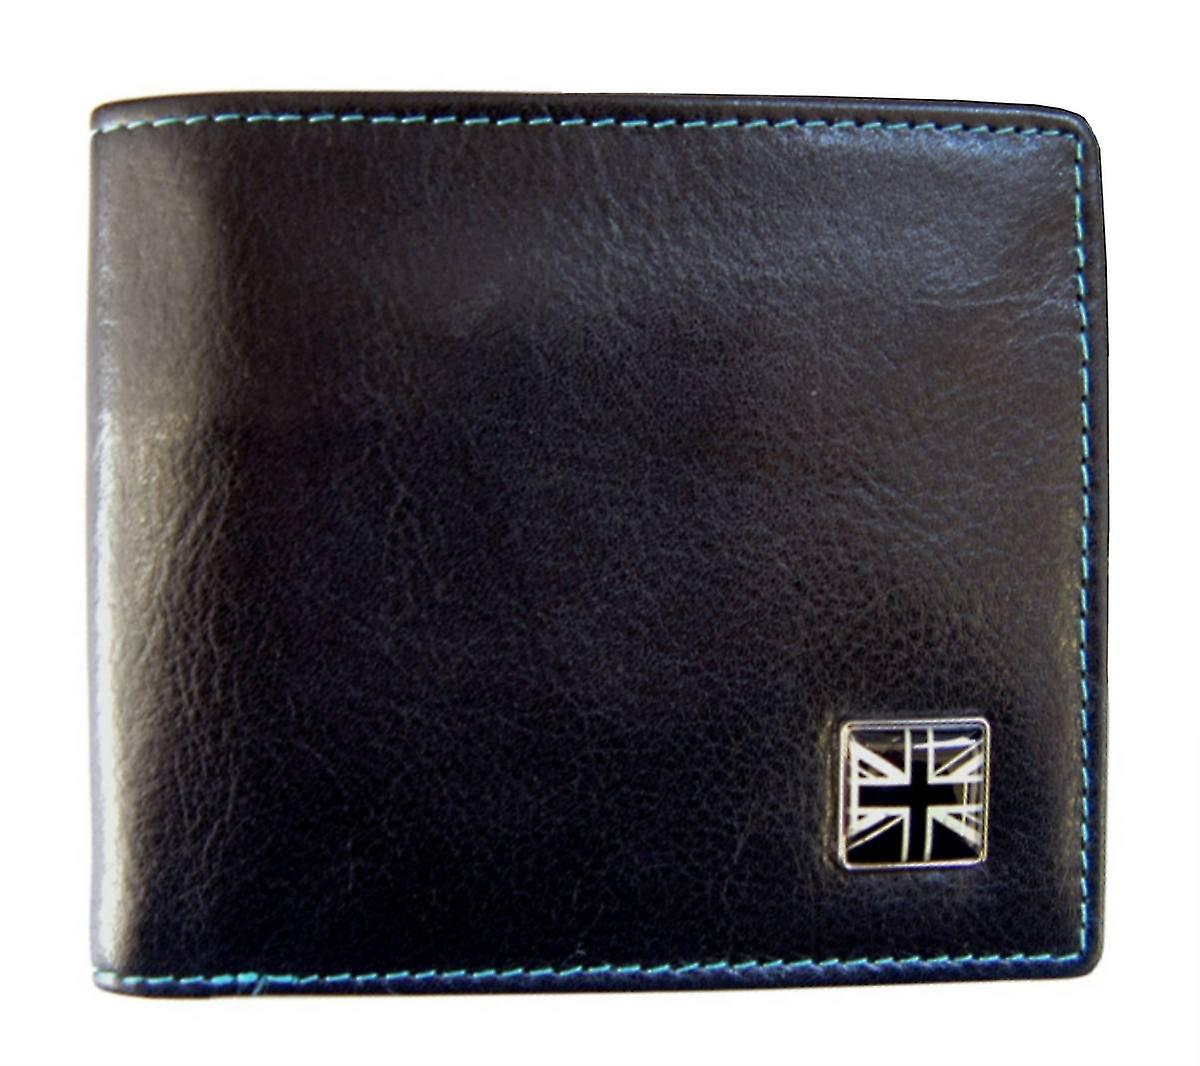 Tyler and Tyler Leather Union Jack Bill Fold Wallet - Black